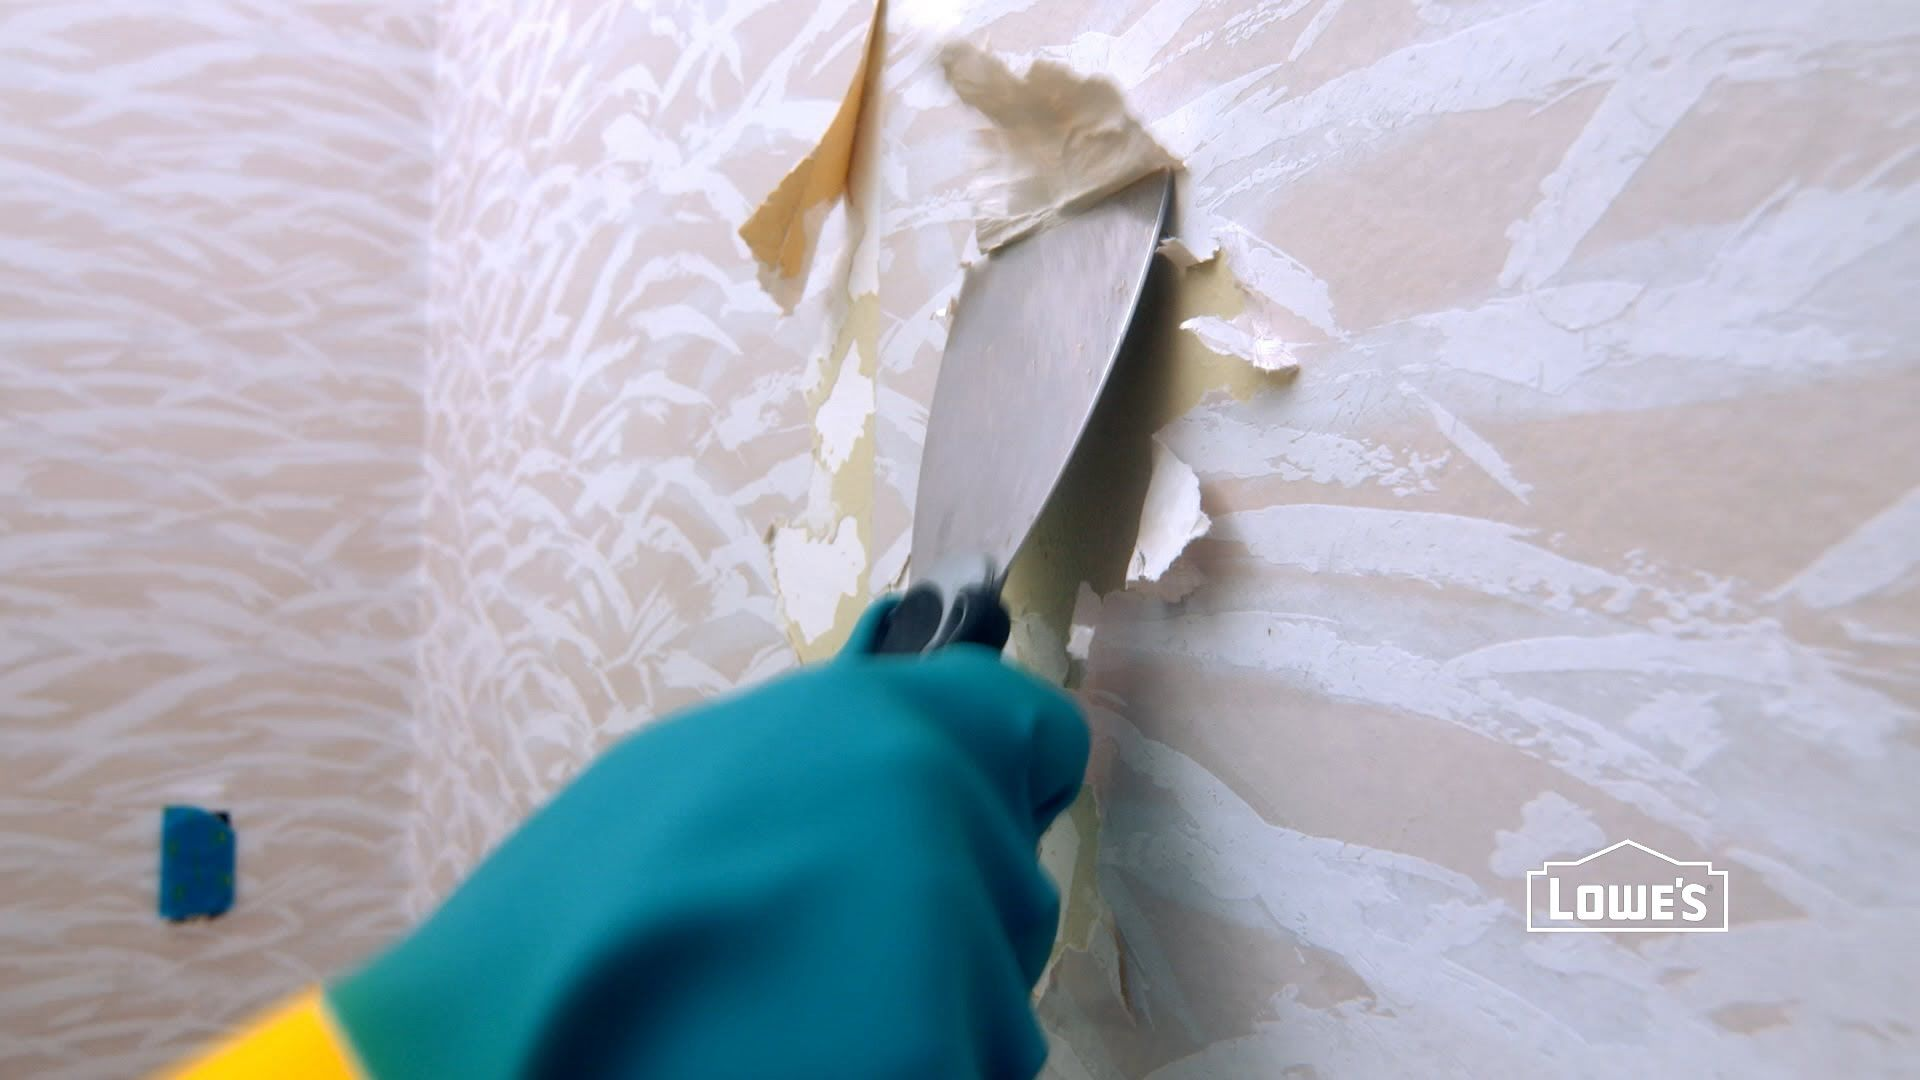 Learn How To Prep Walls For Painting A Room, Including Removing Wallpaper,  Repairing Holes Design